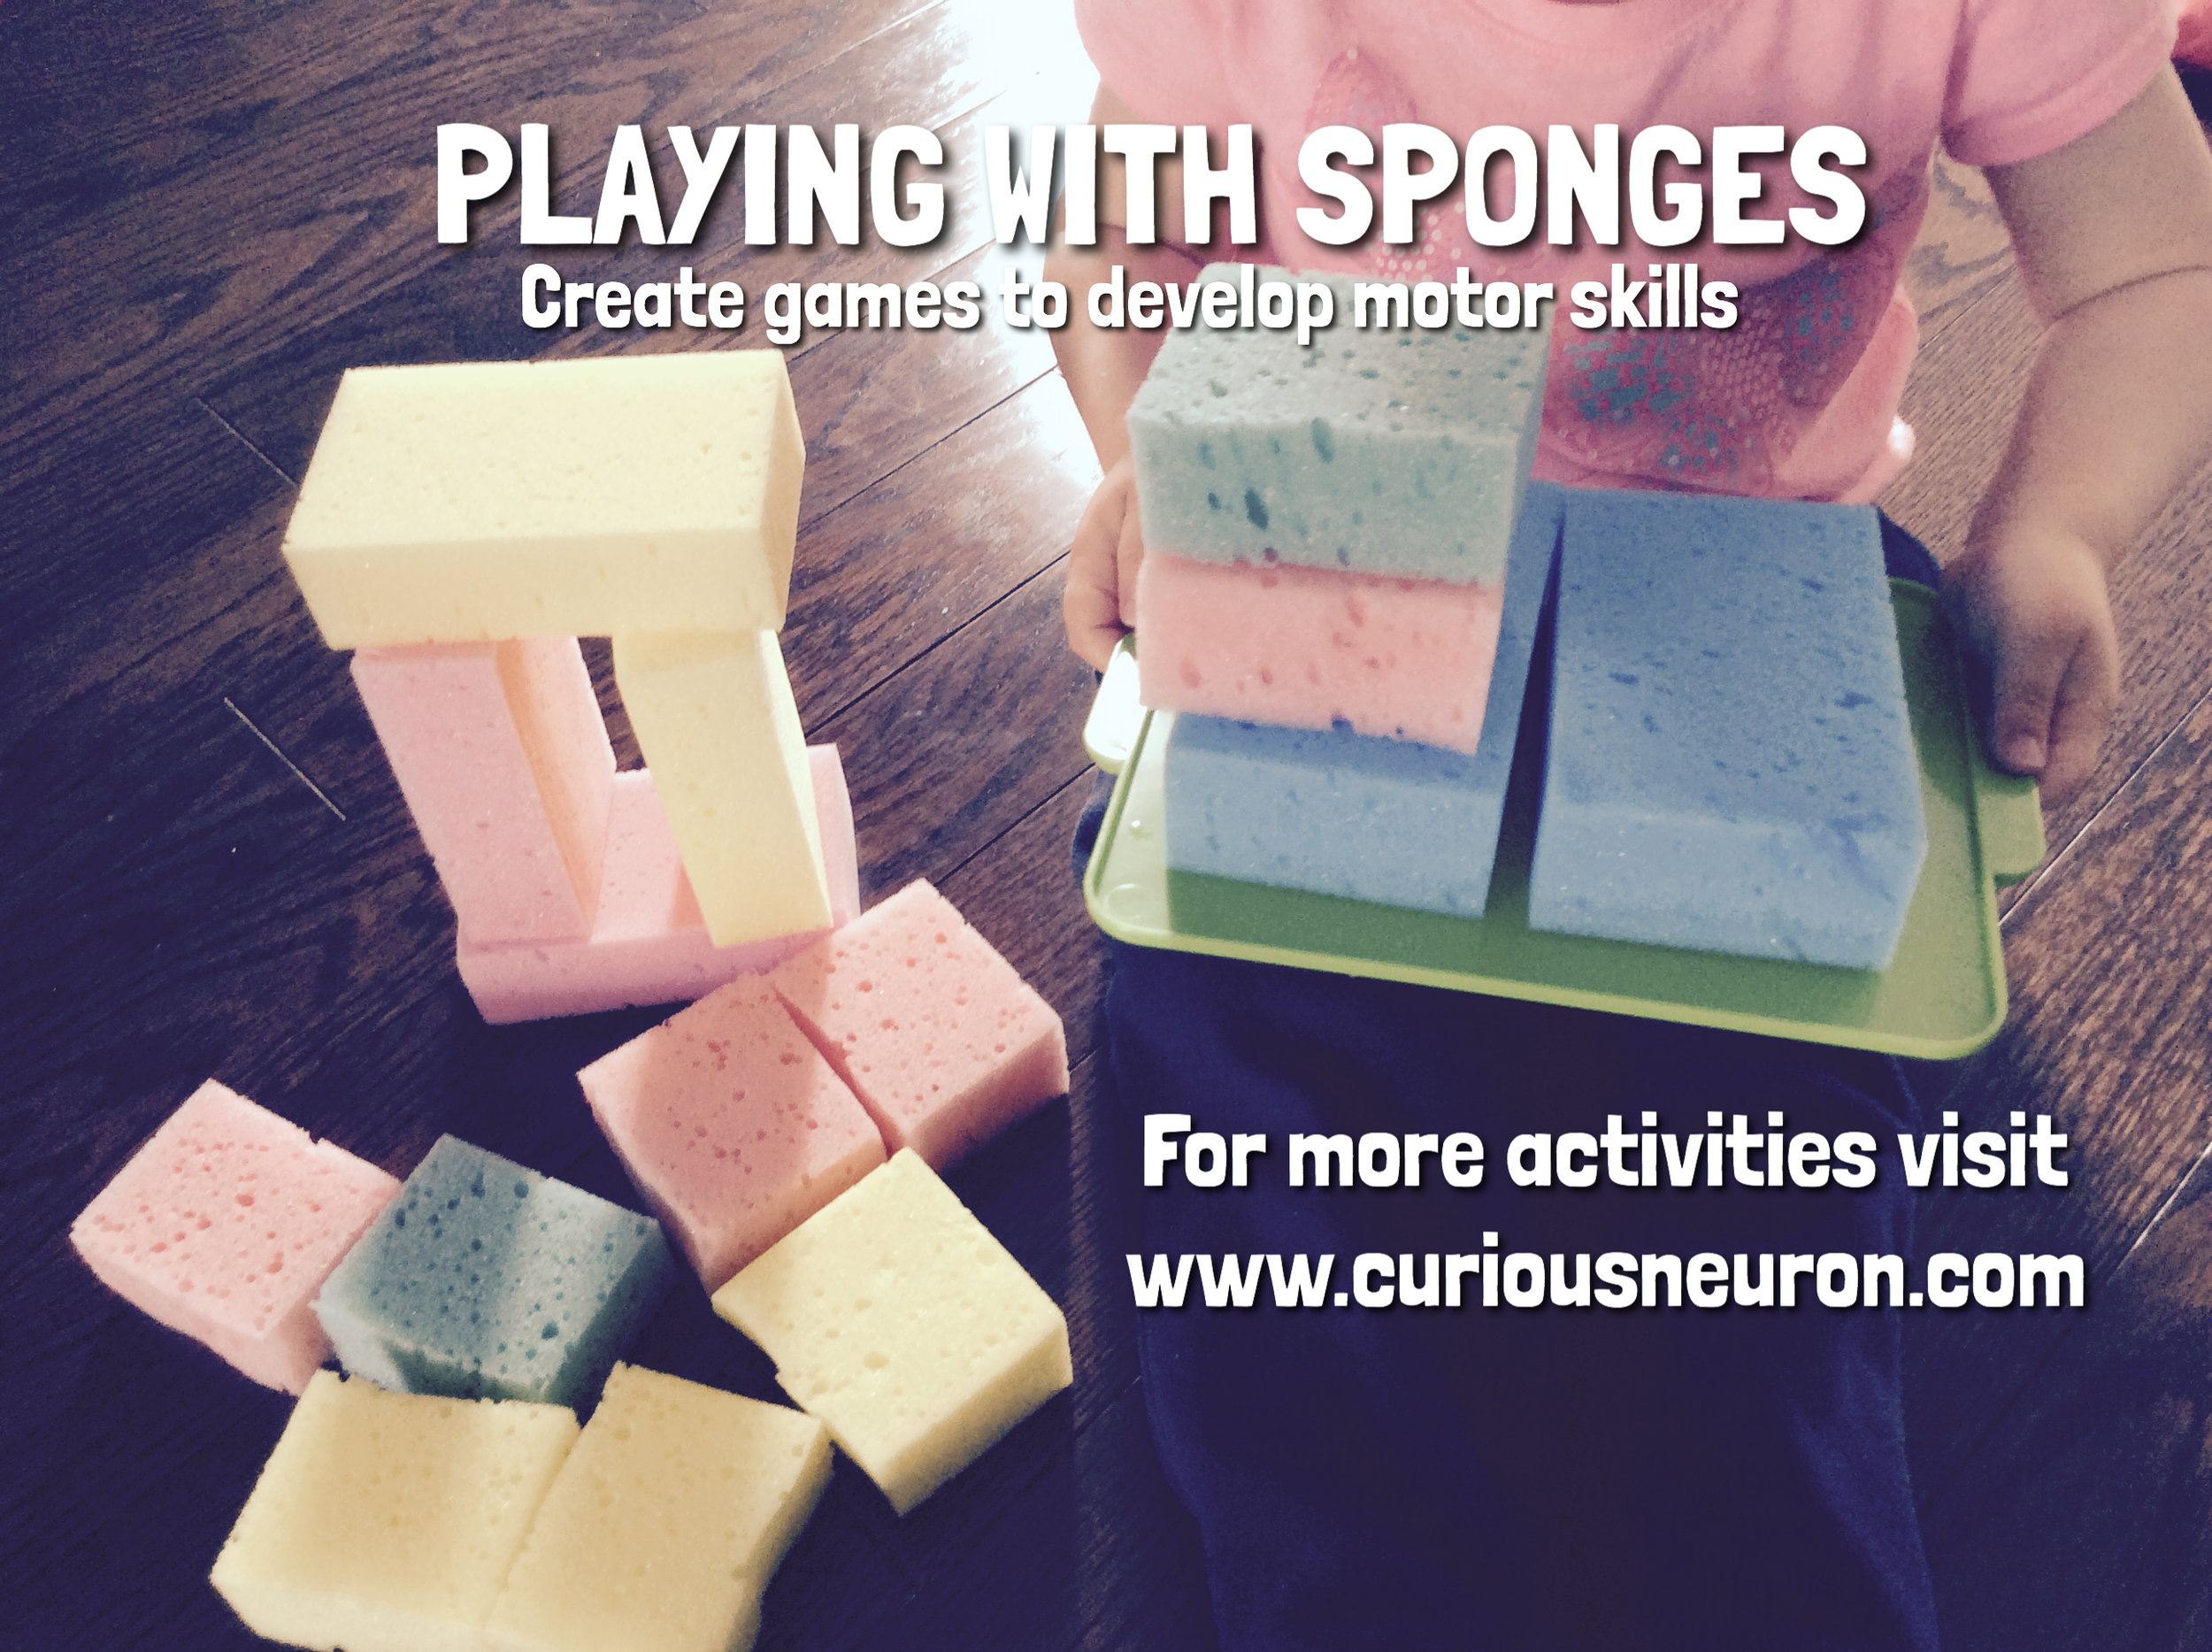 Playing with sponges is a fun way to play with babies. You can cut some in smaller pieces and build towers. You can hide them or throw them into a bowl. If your baby walks put some on a plastic cover and have your child try to walk while balancing them.